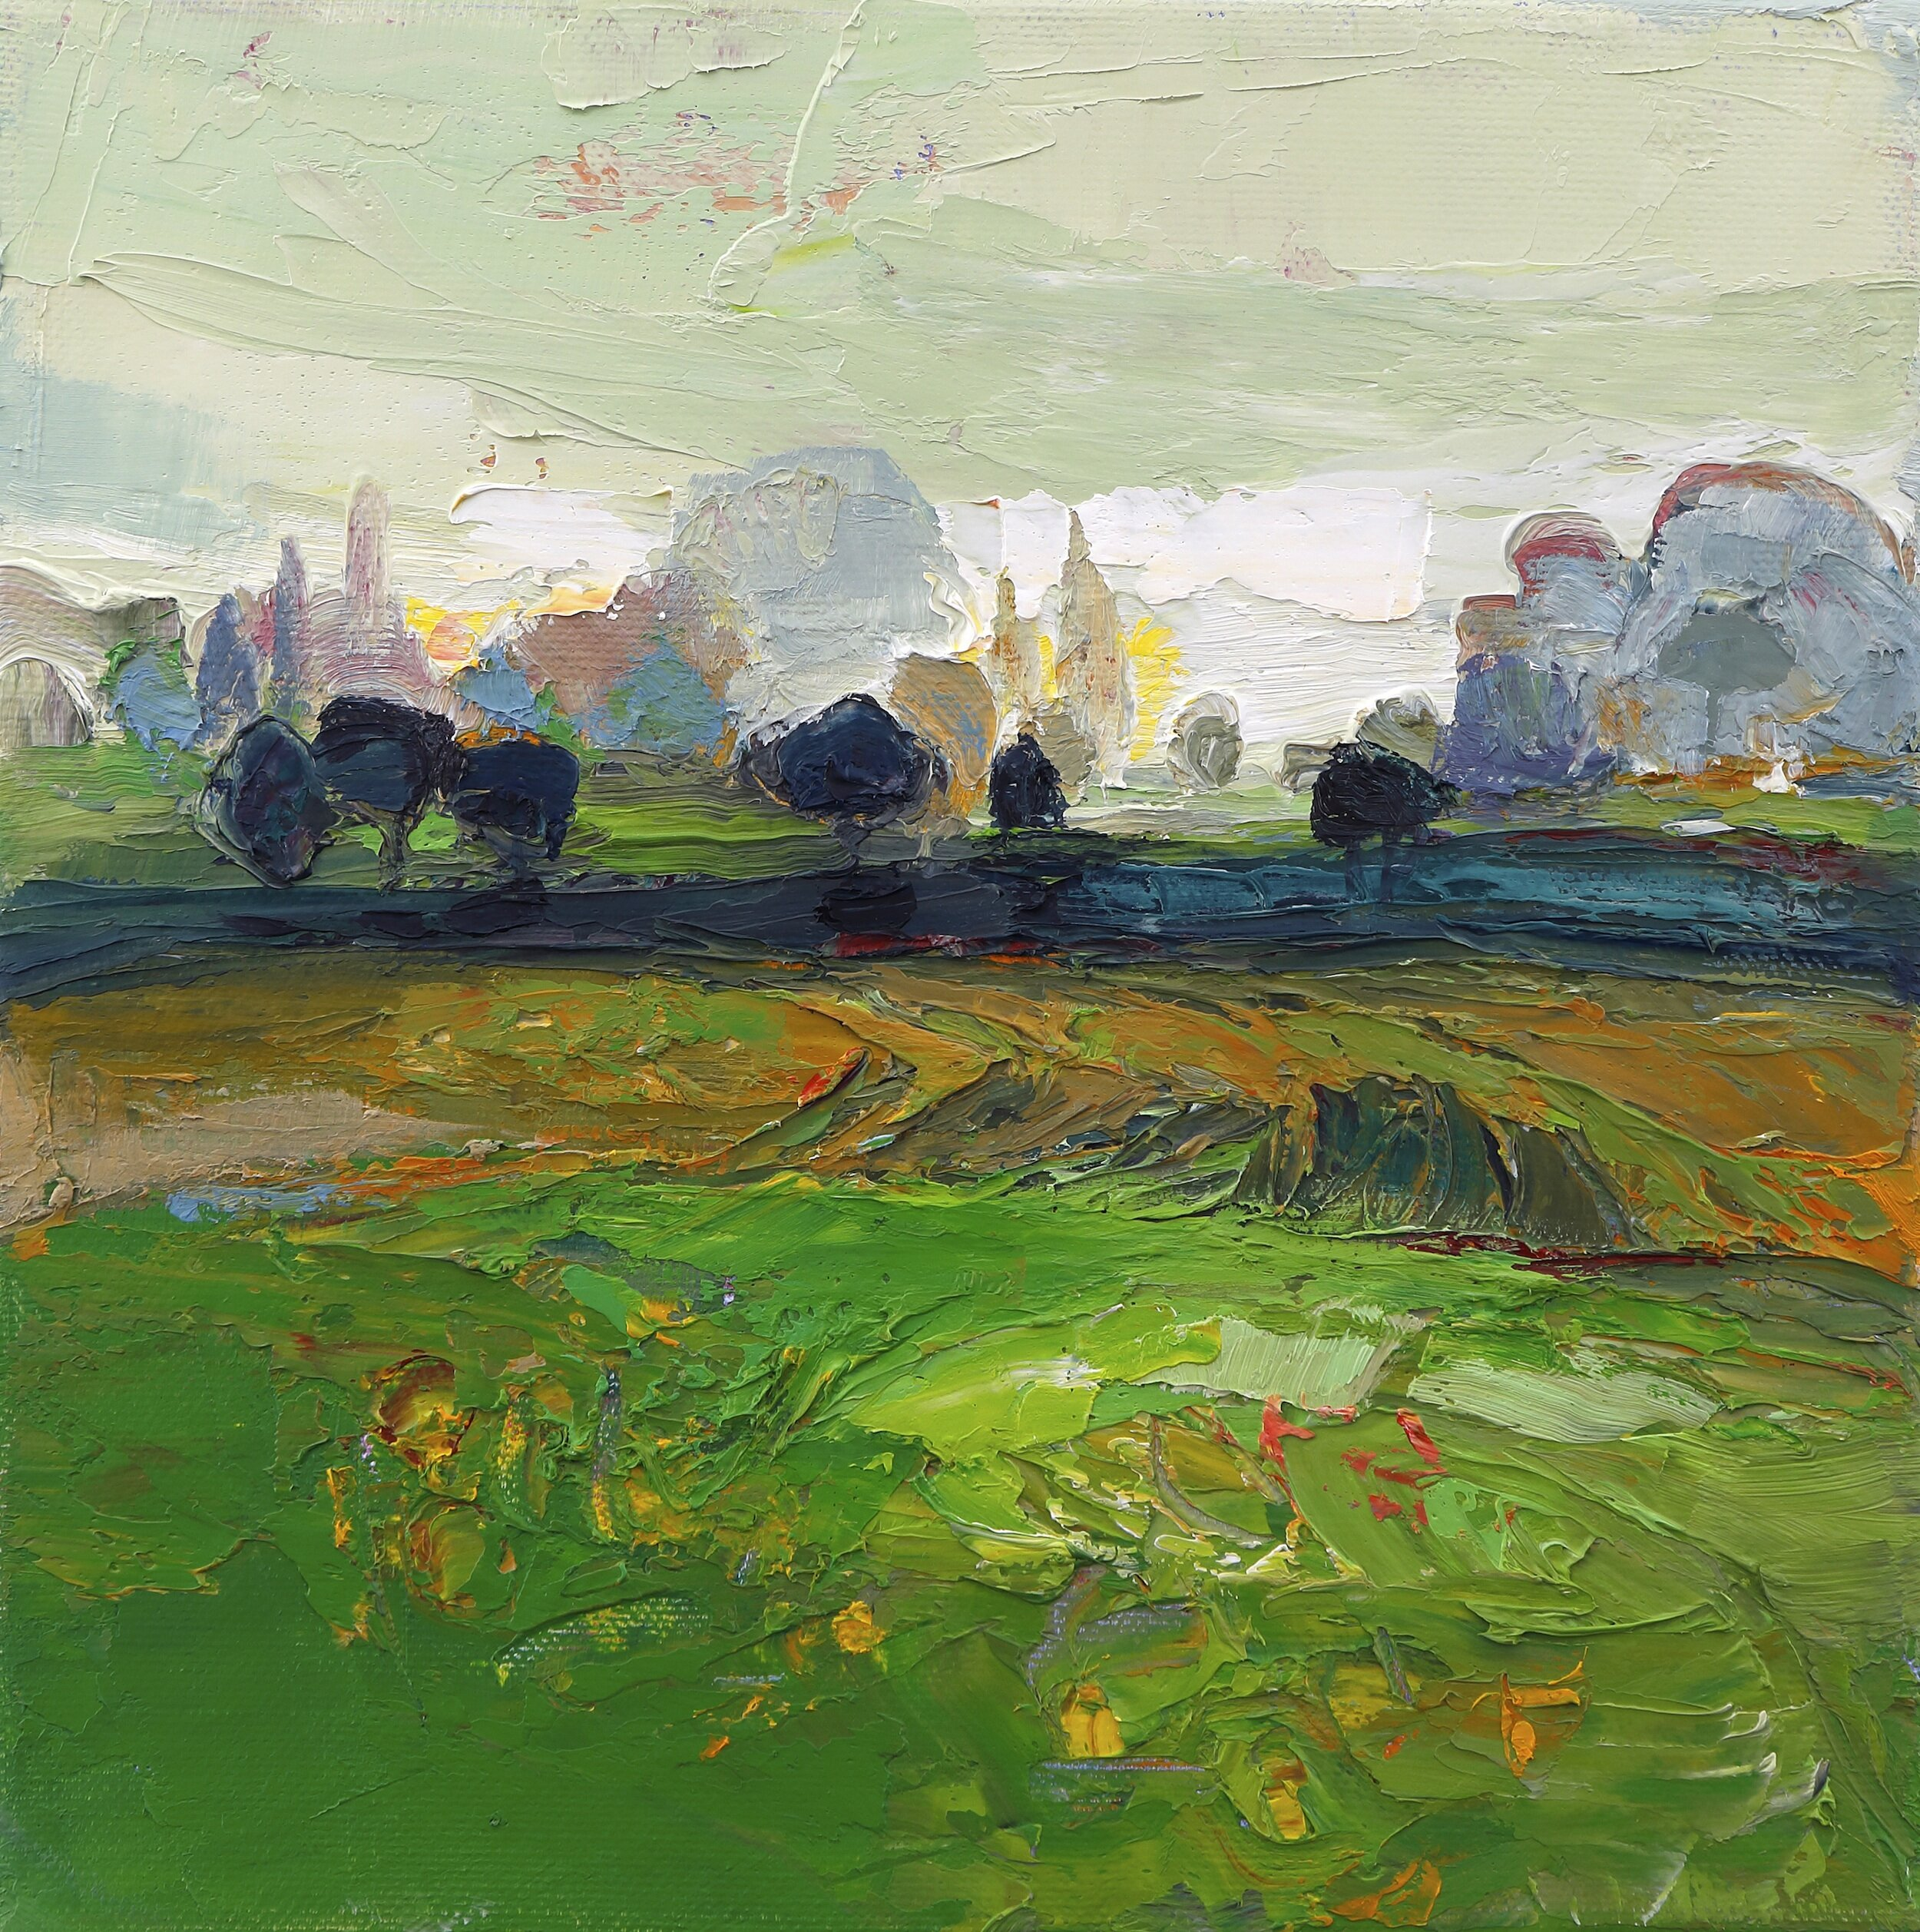 Title: Lush Green Square  Size: 8x8in  Medium: Oil on Canvas  Price: £950